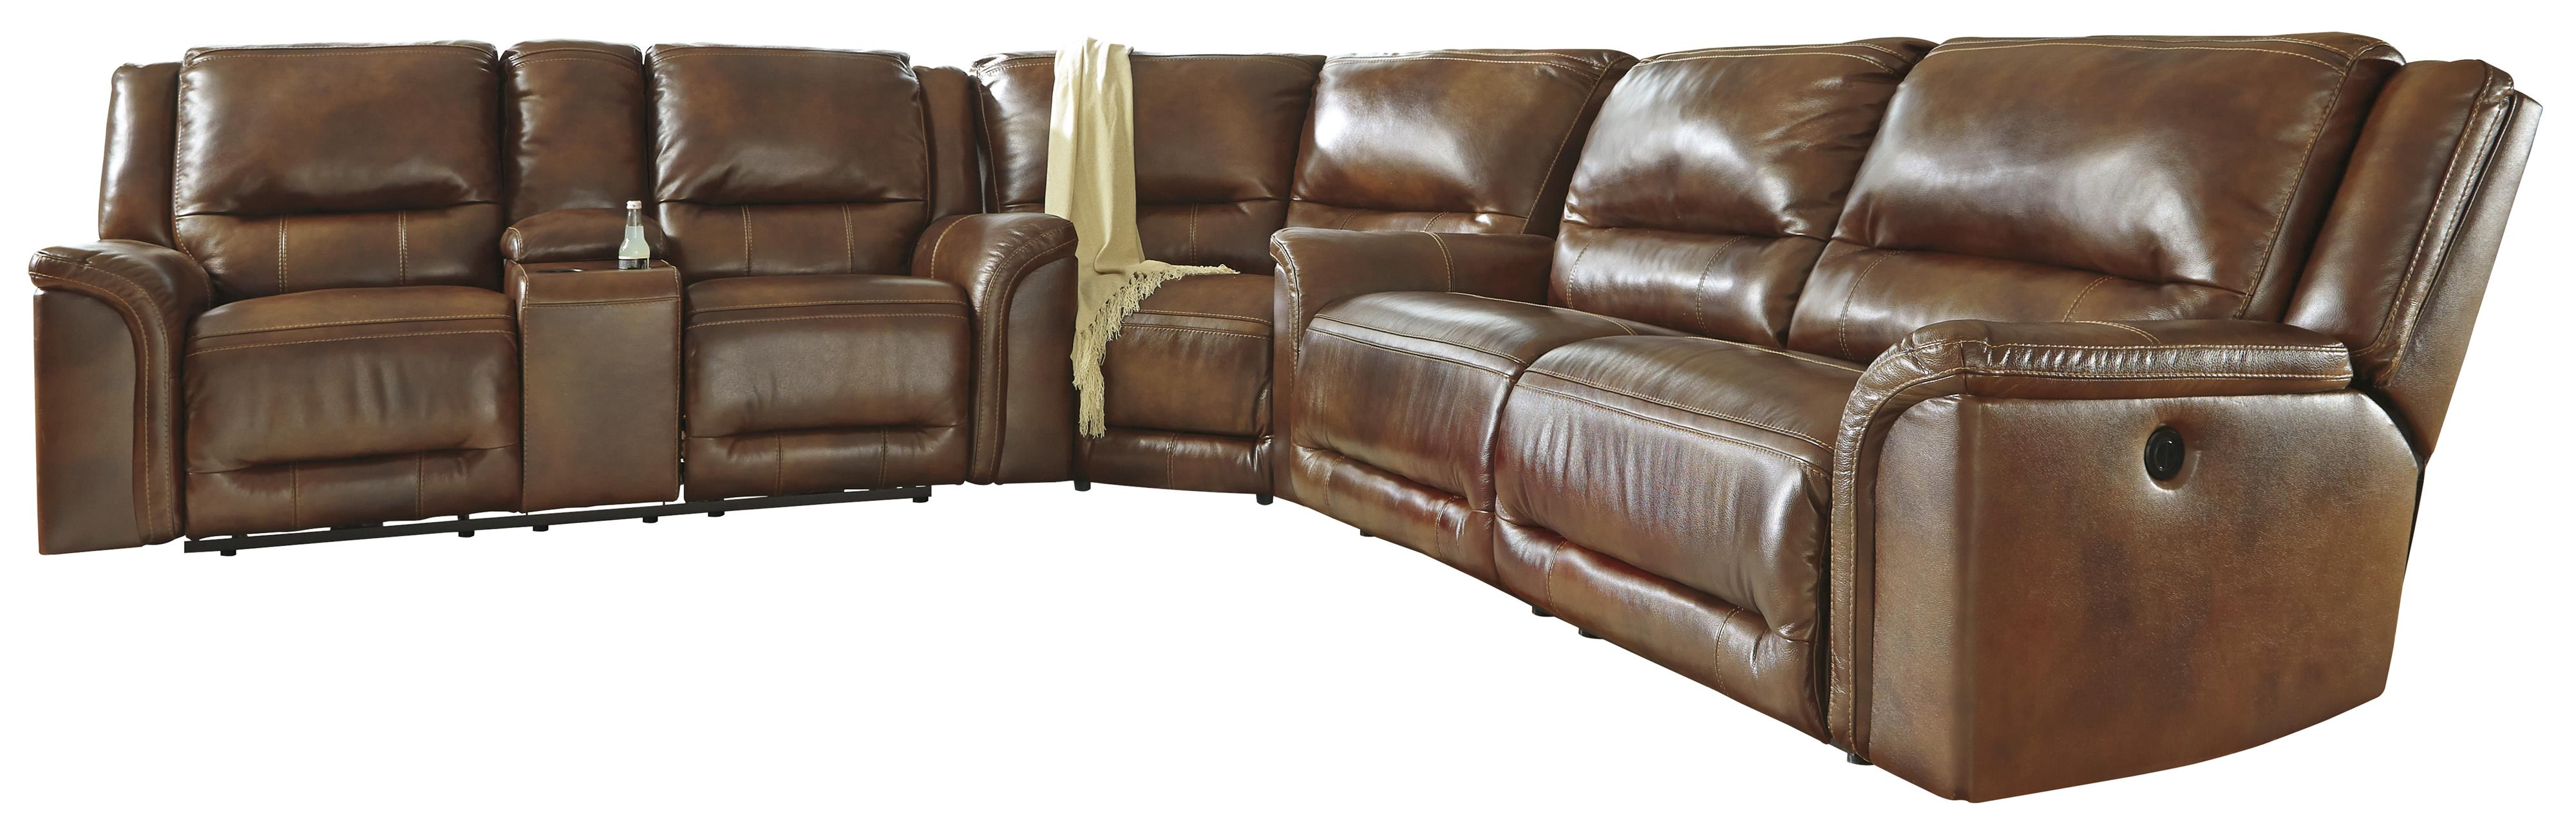 Signature Design by Ashley Jayron Power Reclining Sectional with Wedge - Item Number: U7660096+77+47